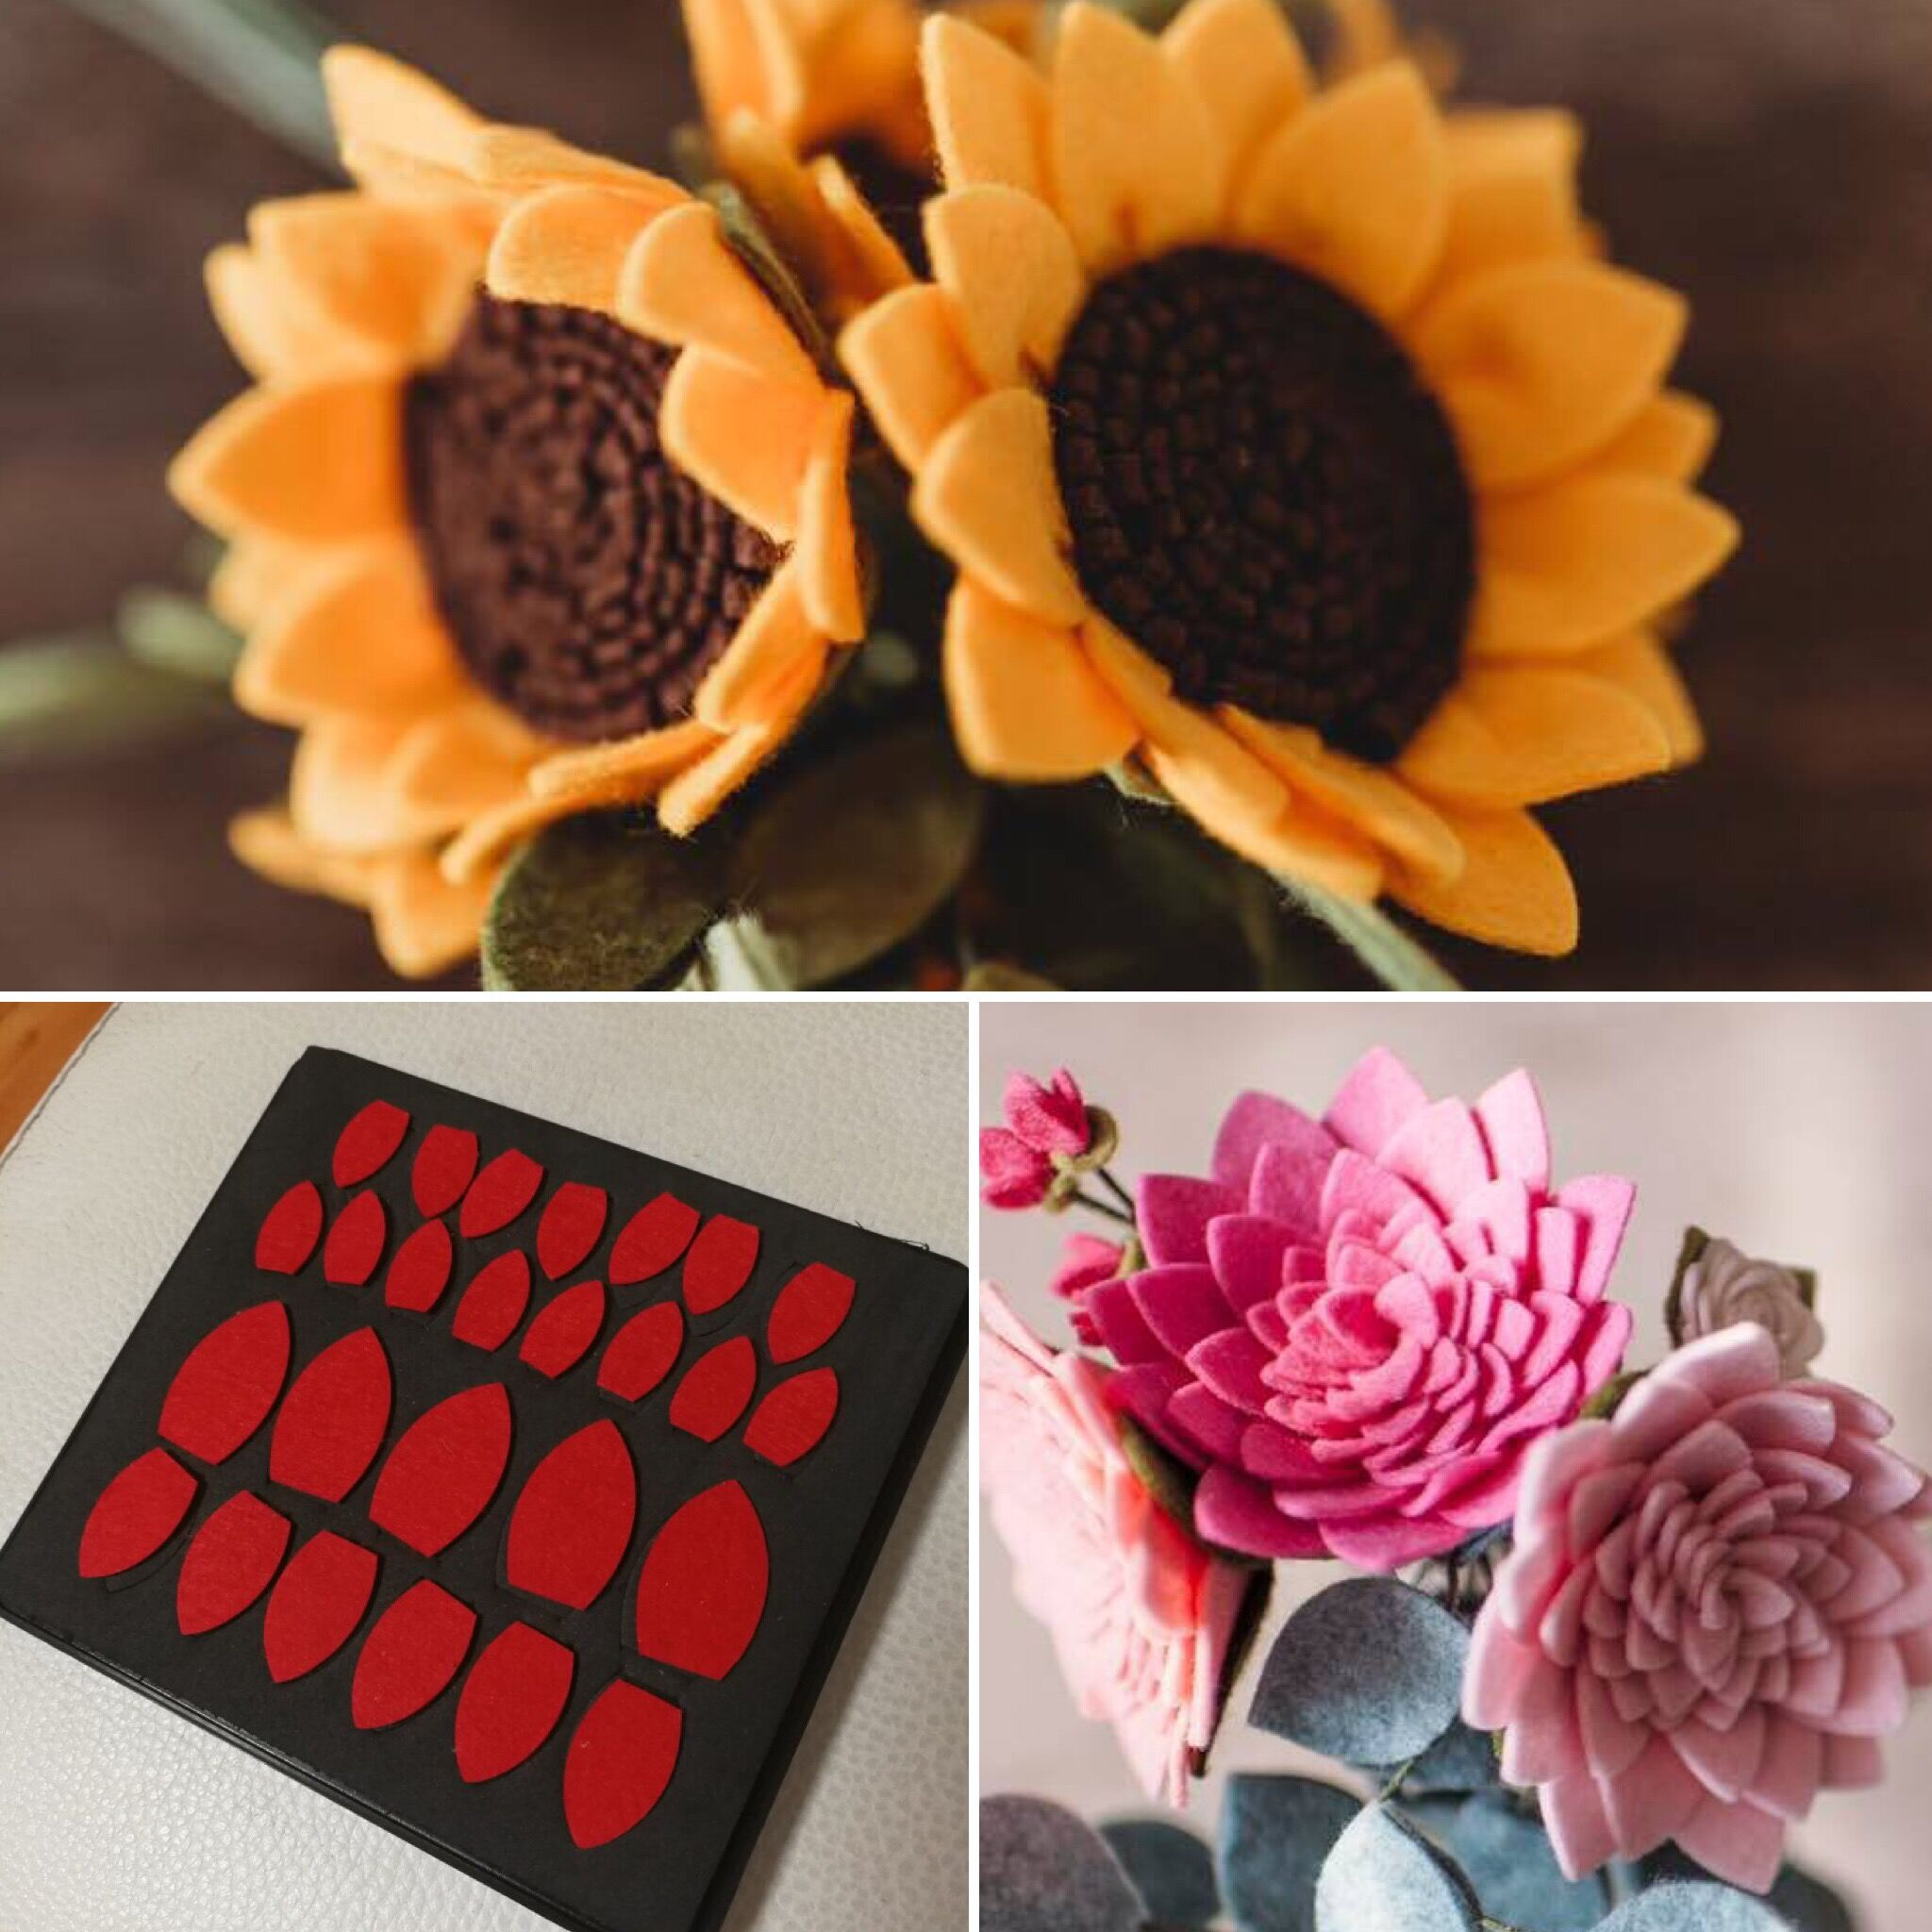 Sun flower petals cutting die for fabric and felt creations SMR FL0018 wooden steel rule die